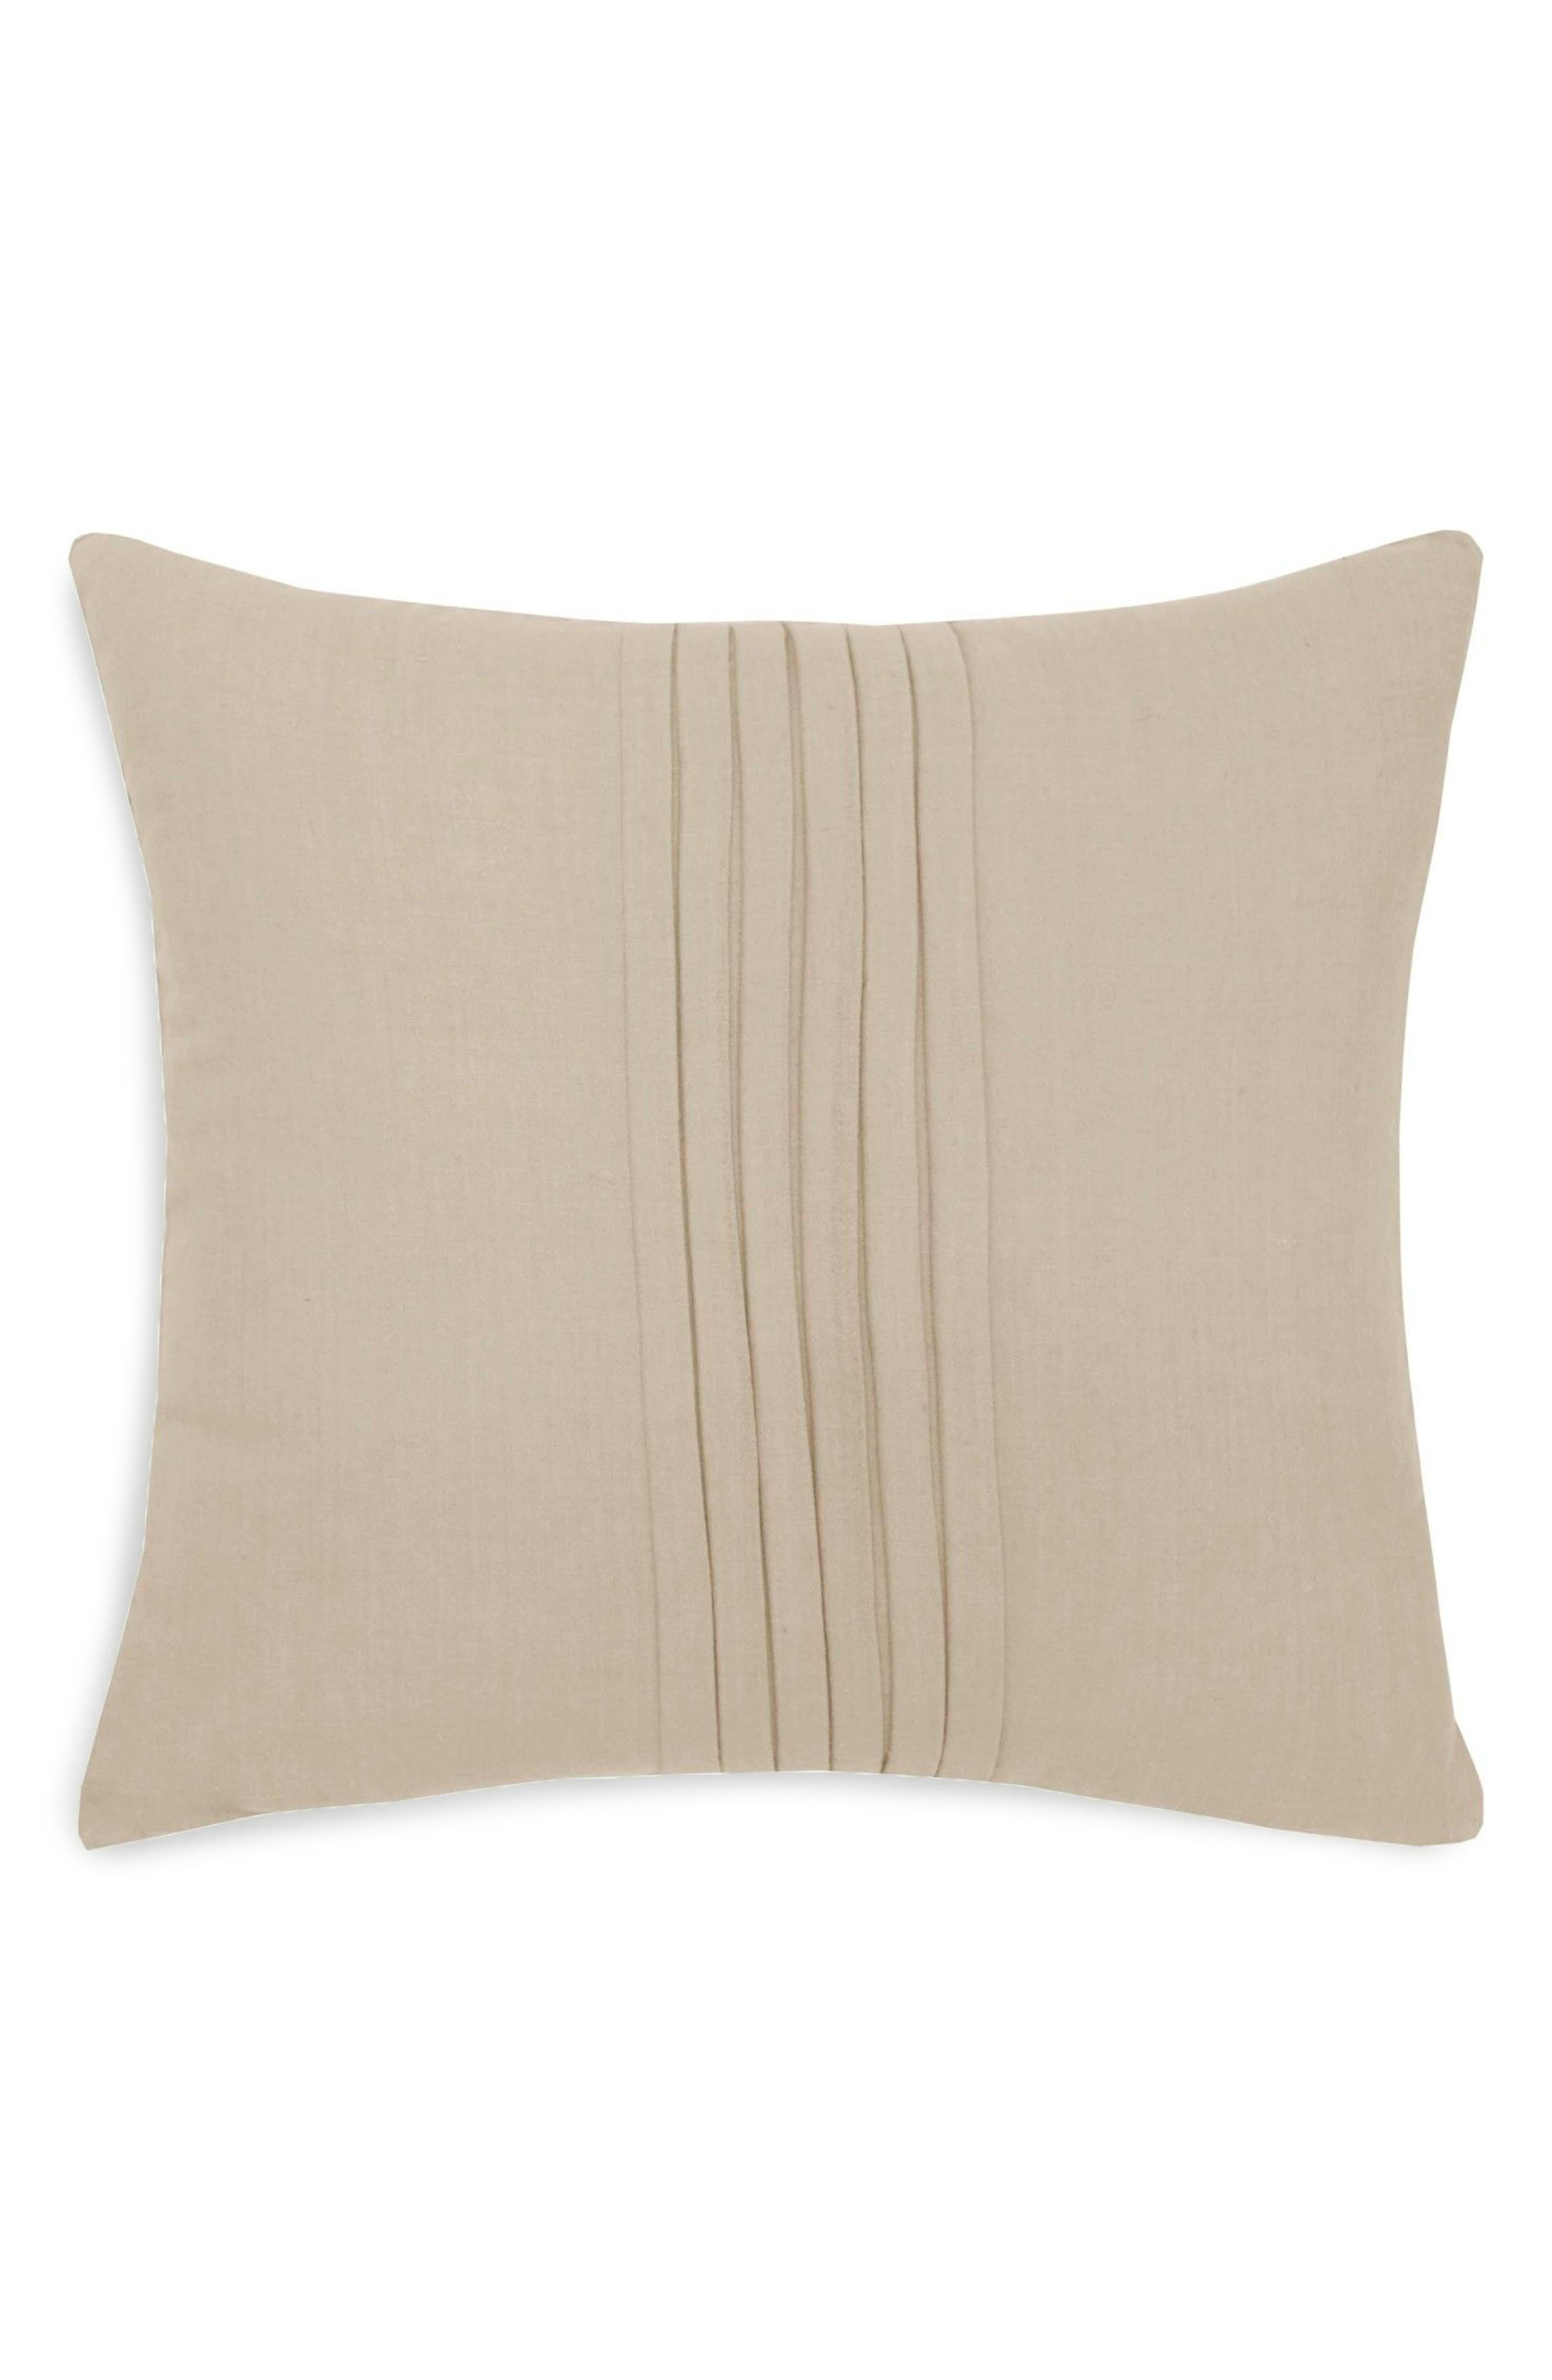 Seabrook Pleated Pillow,                             Main thumbnail 1, color,                             289